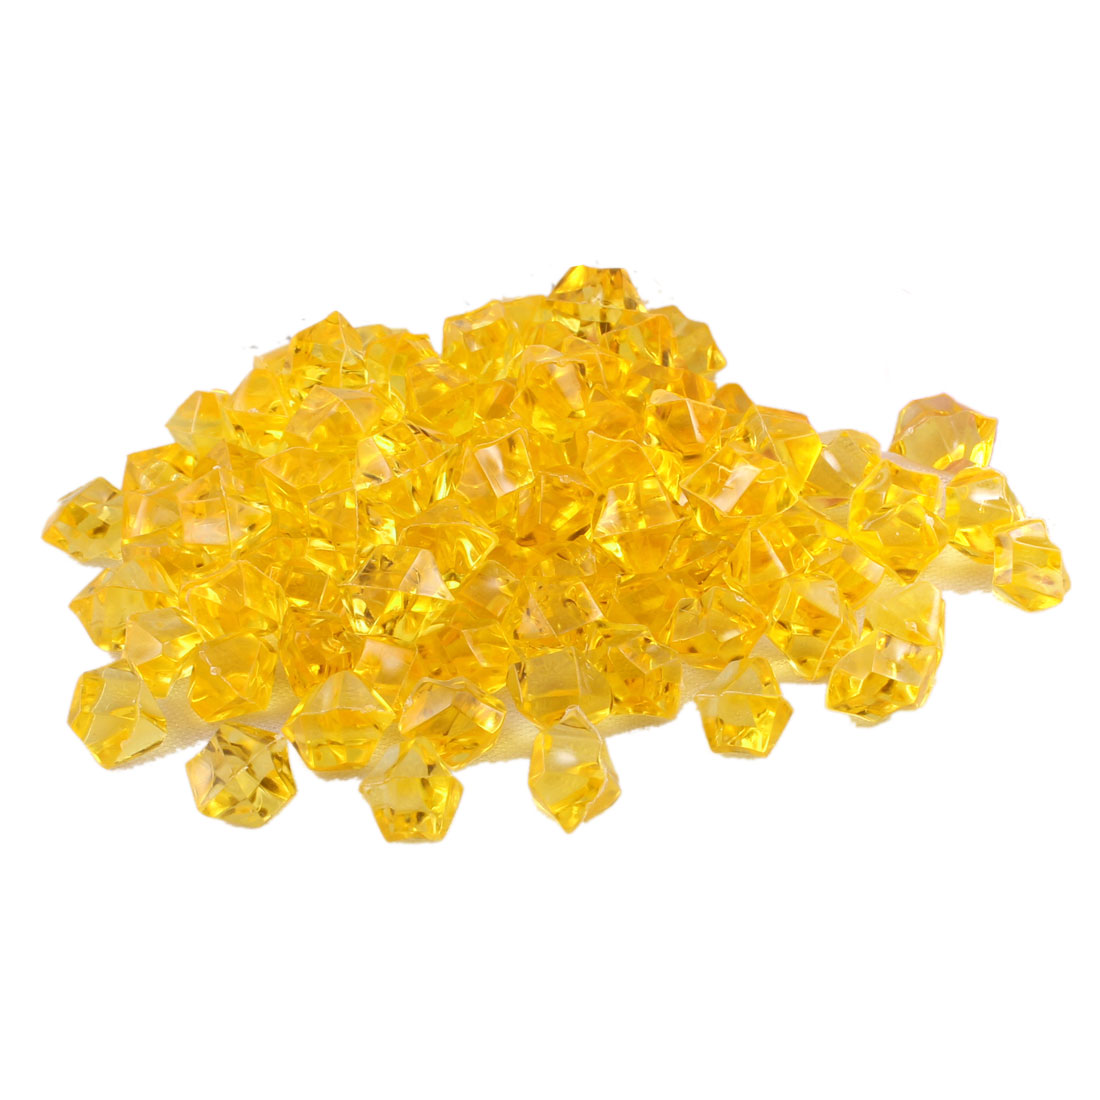 "100pcs Gold Tone Polygon Faux Crystal Stones Decor 0.6"" Long for Aquarium"